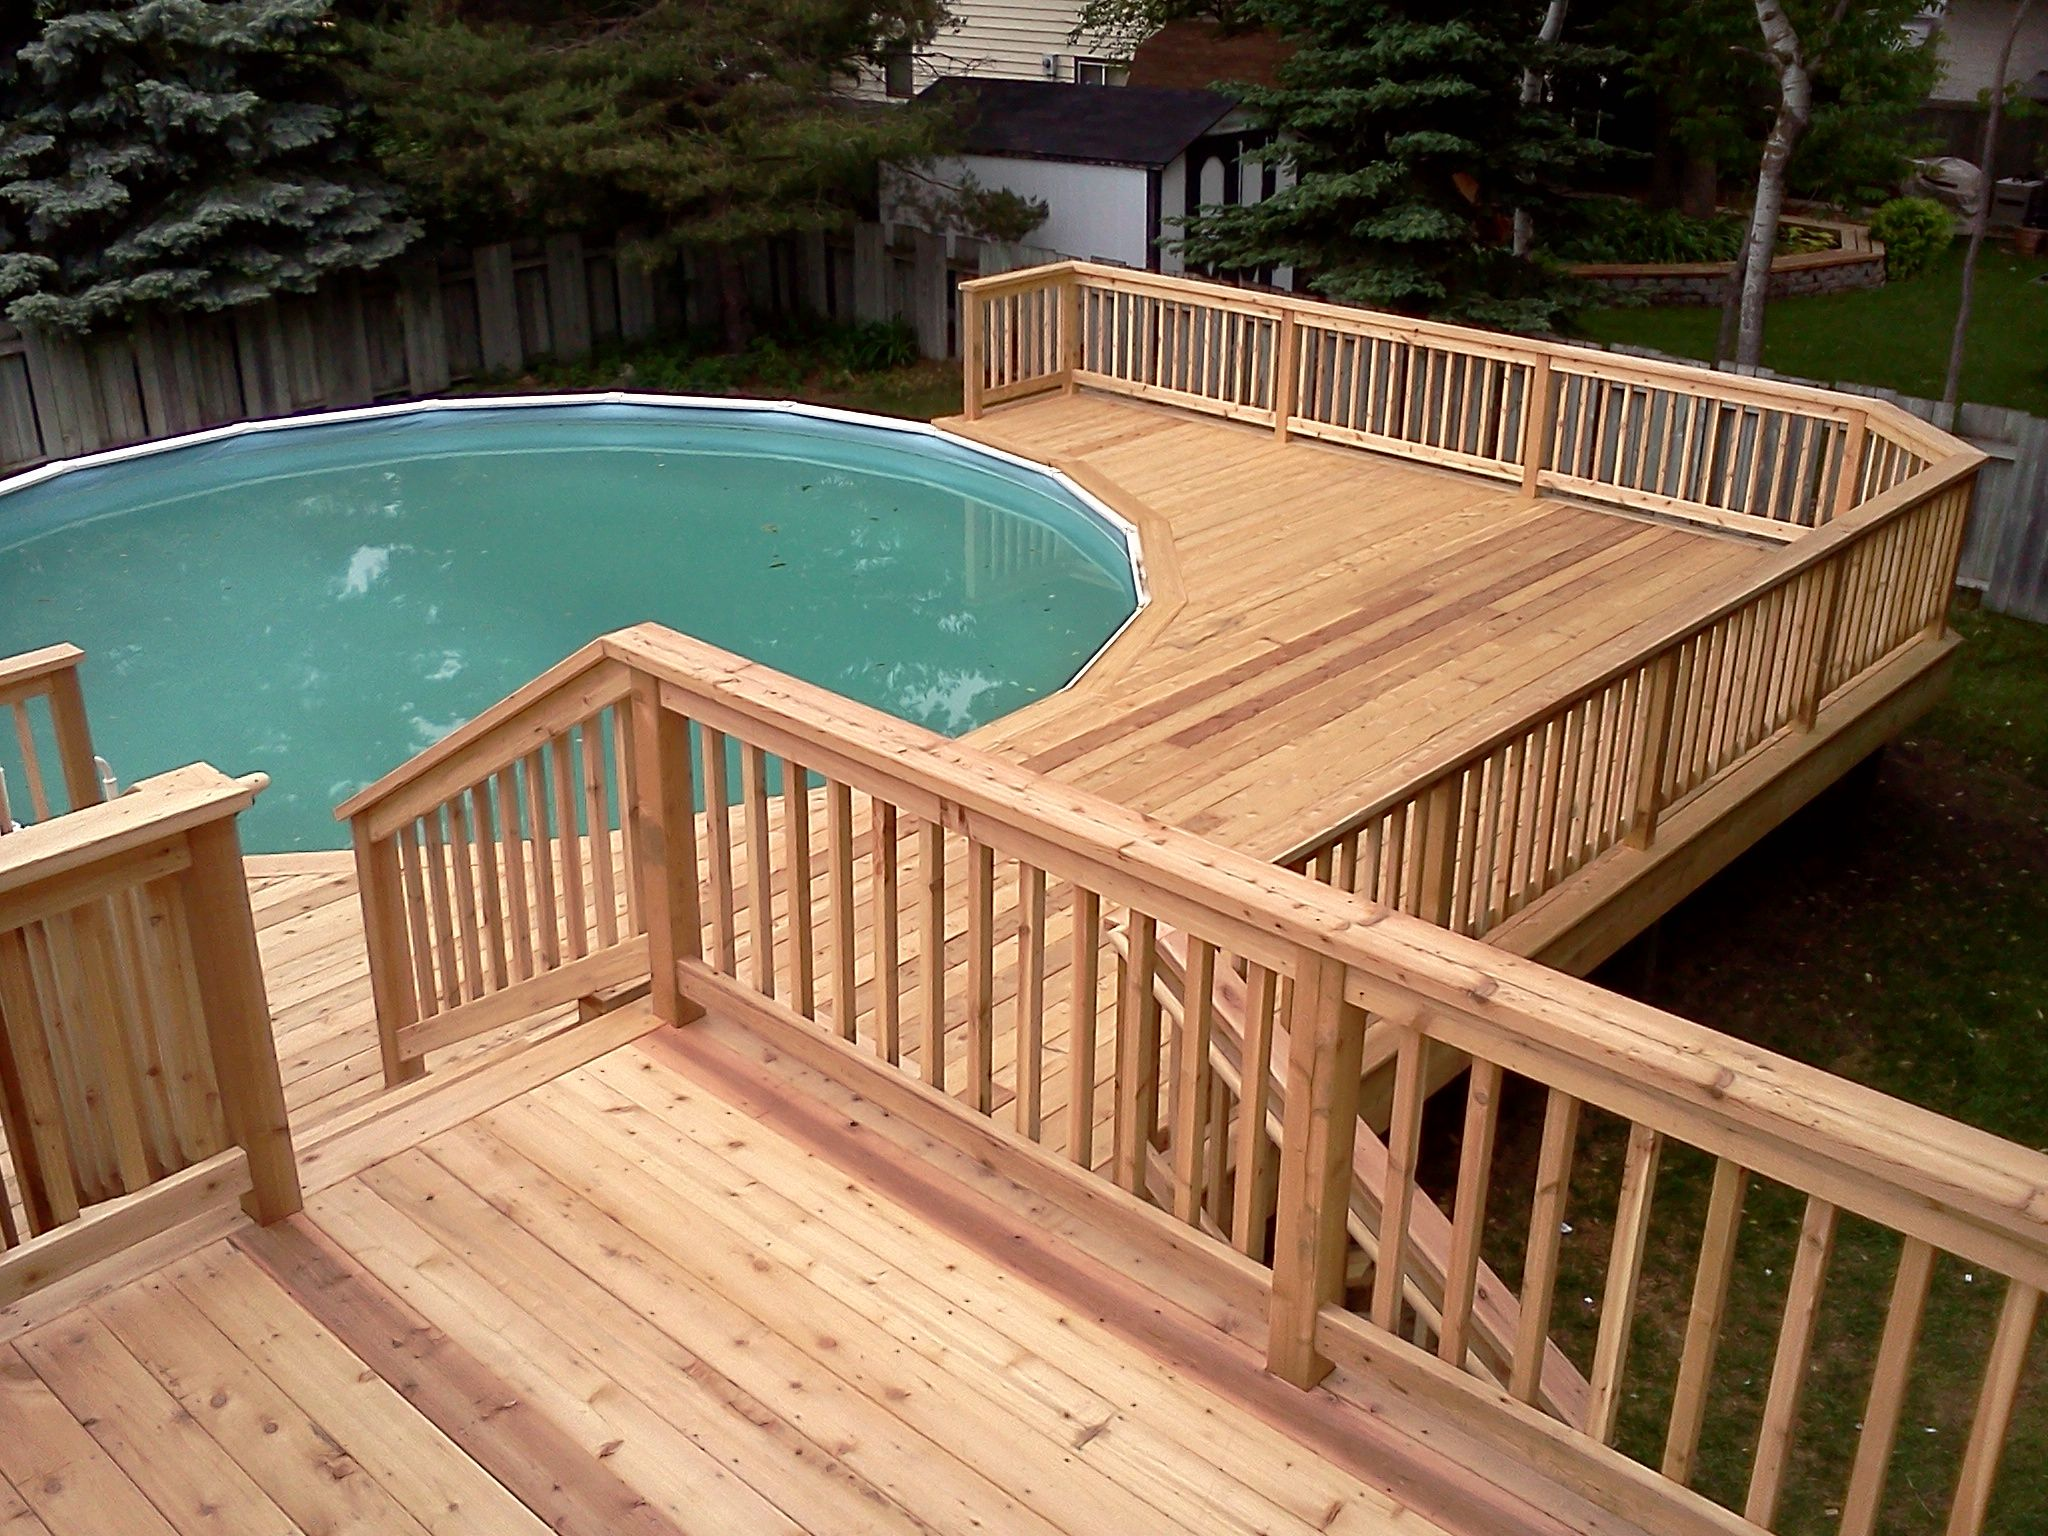 swimming pool simple wooden pool deck ideas for small and round shape swimming pool design scenic